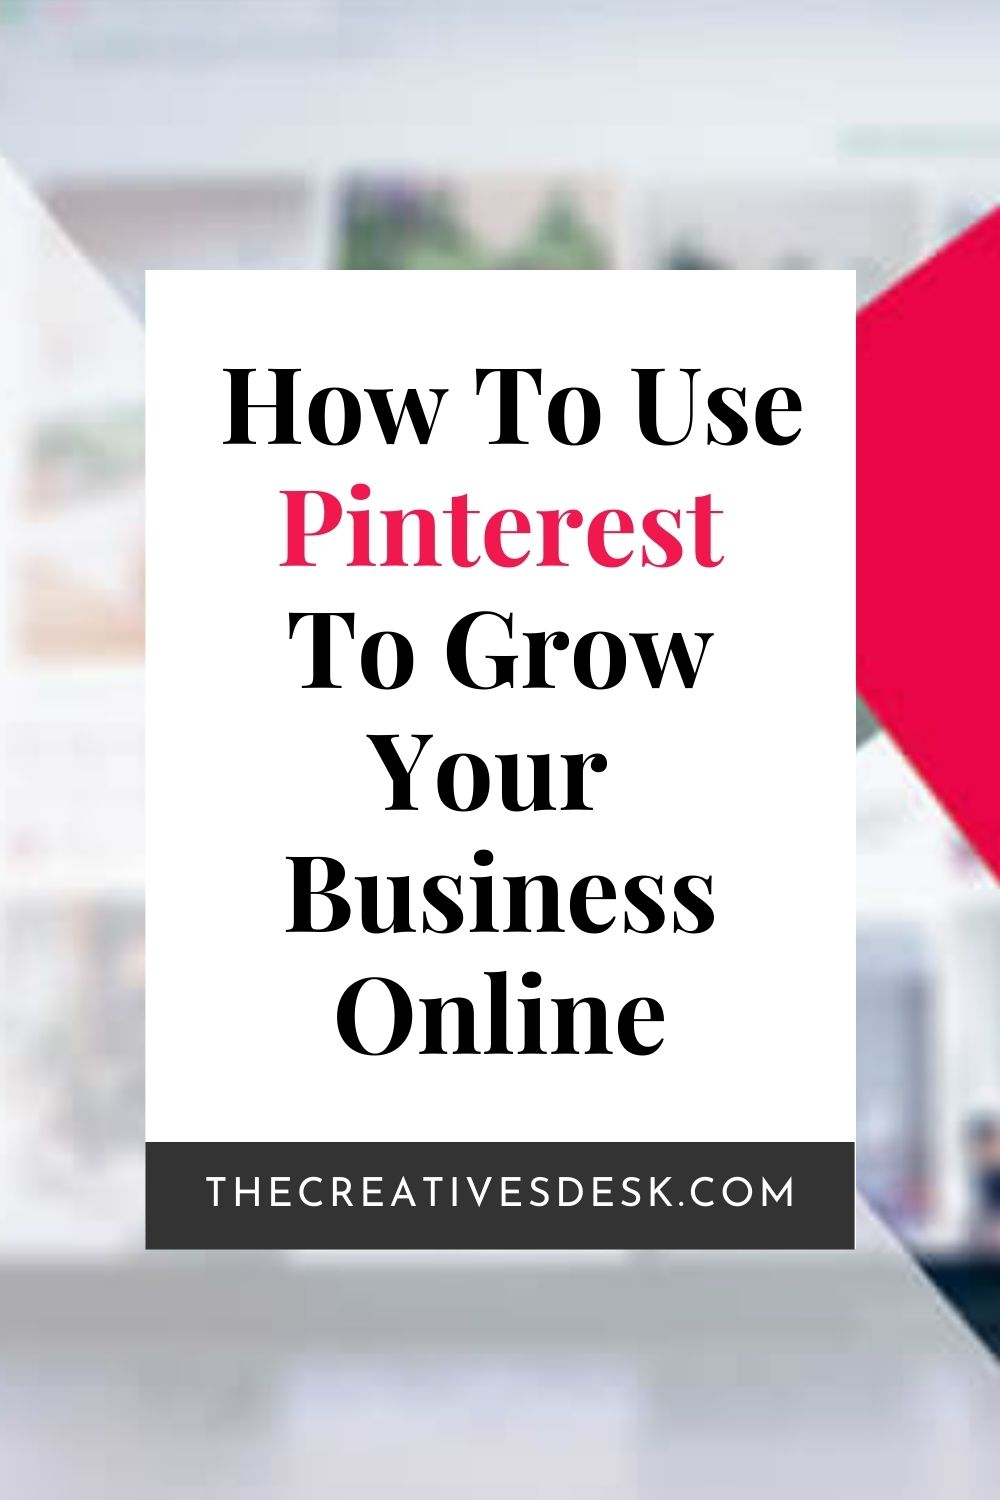 How To Use Pinterest To Help Grow Your Business Online